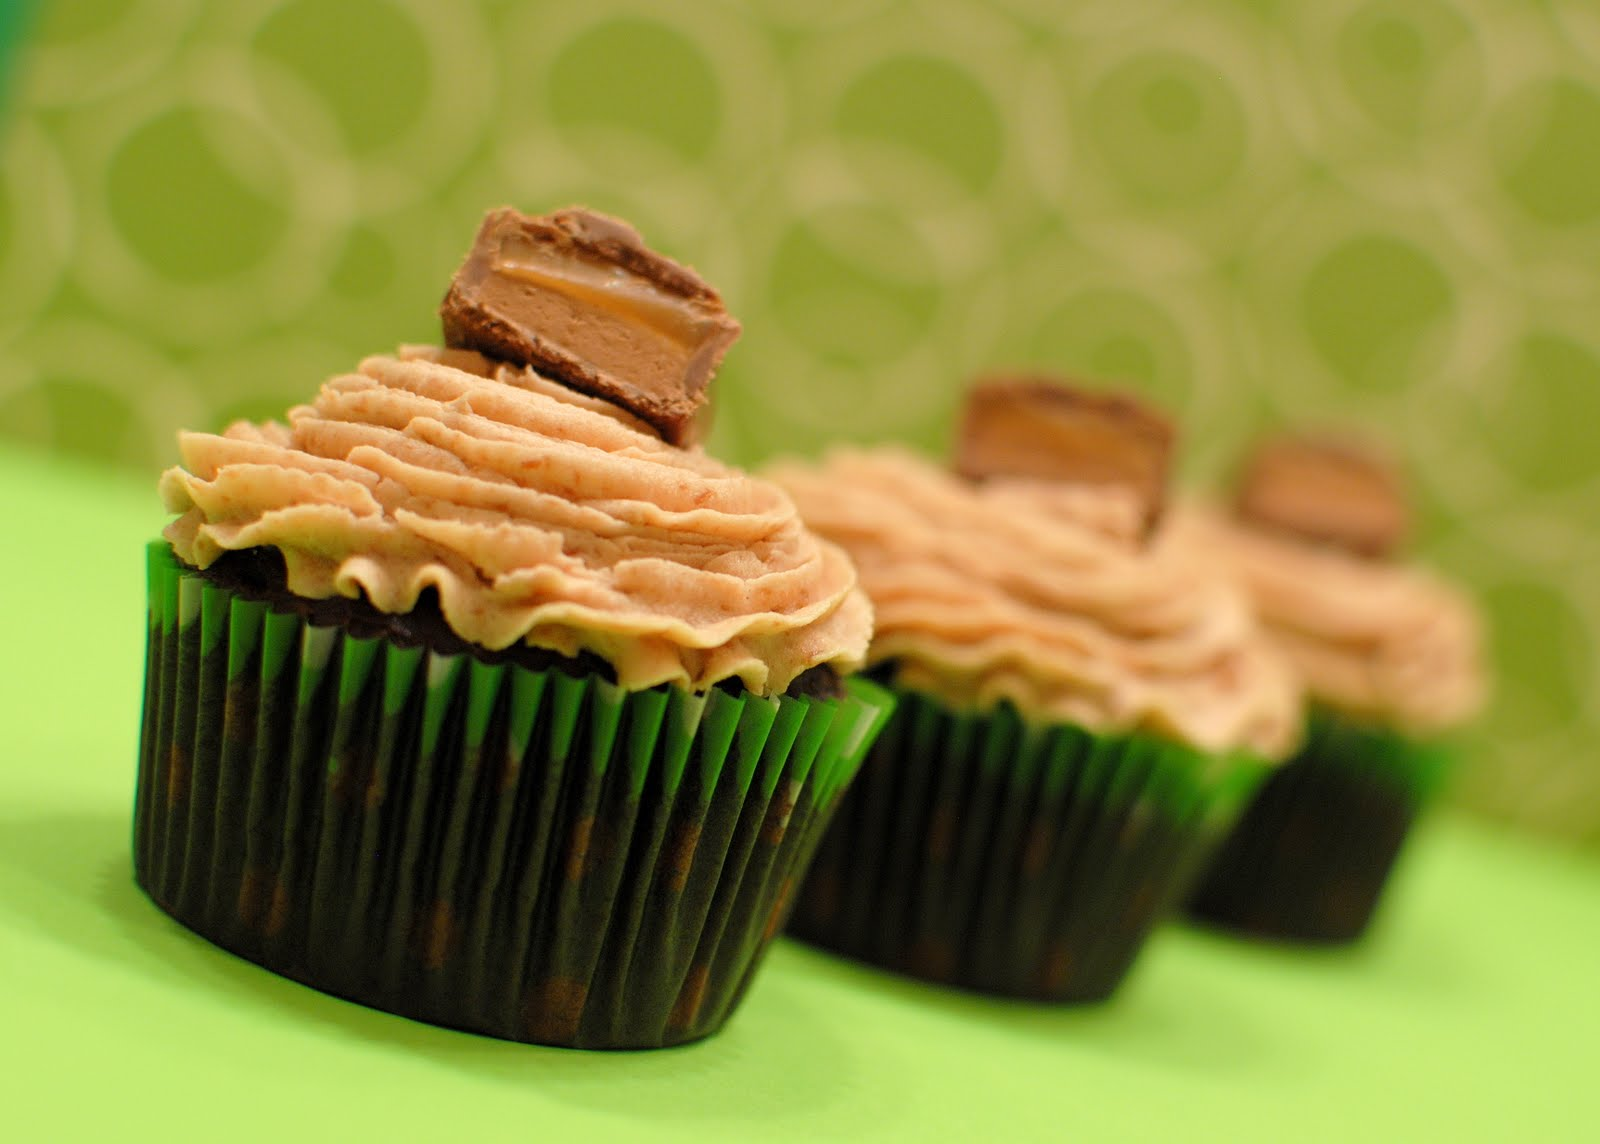 How about a cupcake to drool over for the weekend???